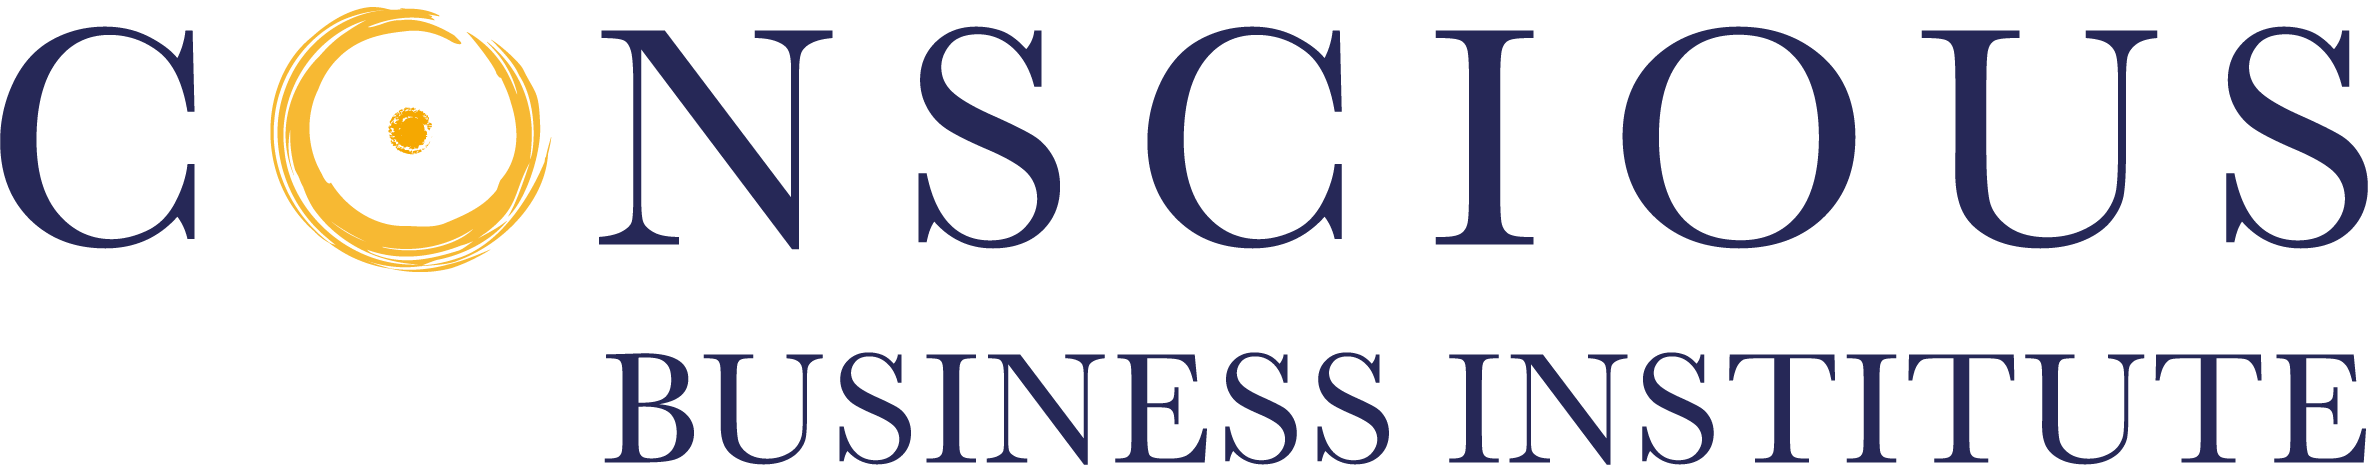 Conscious Business Institute